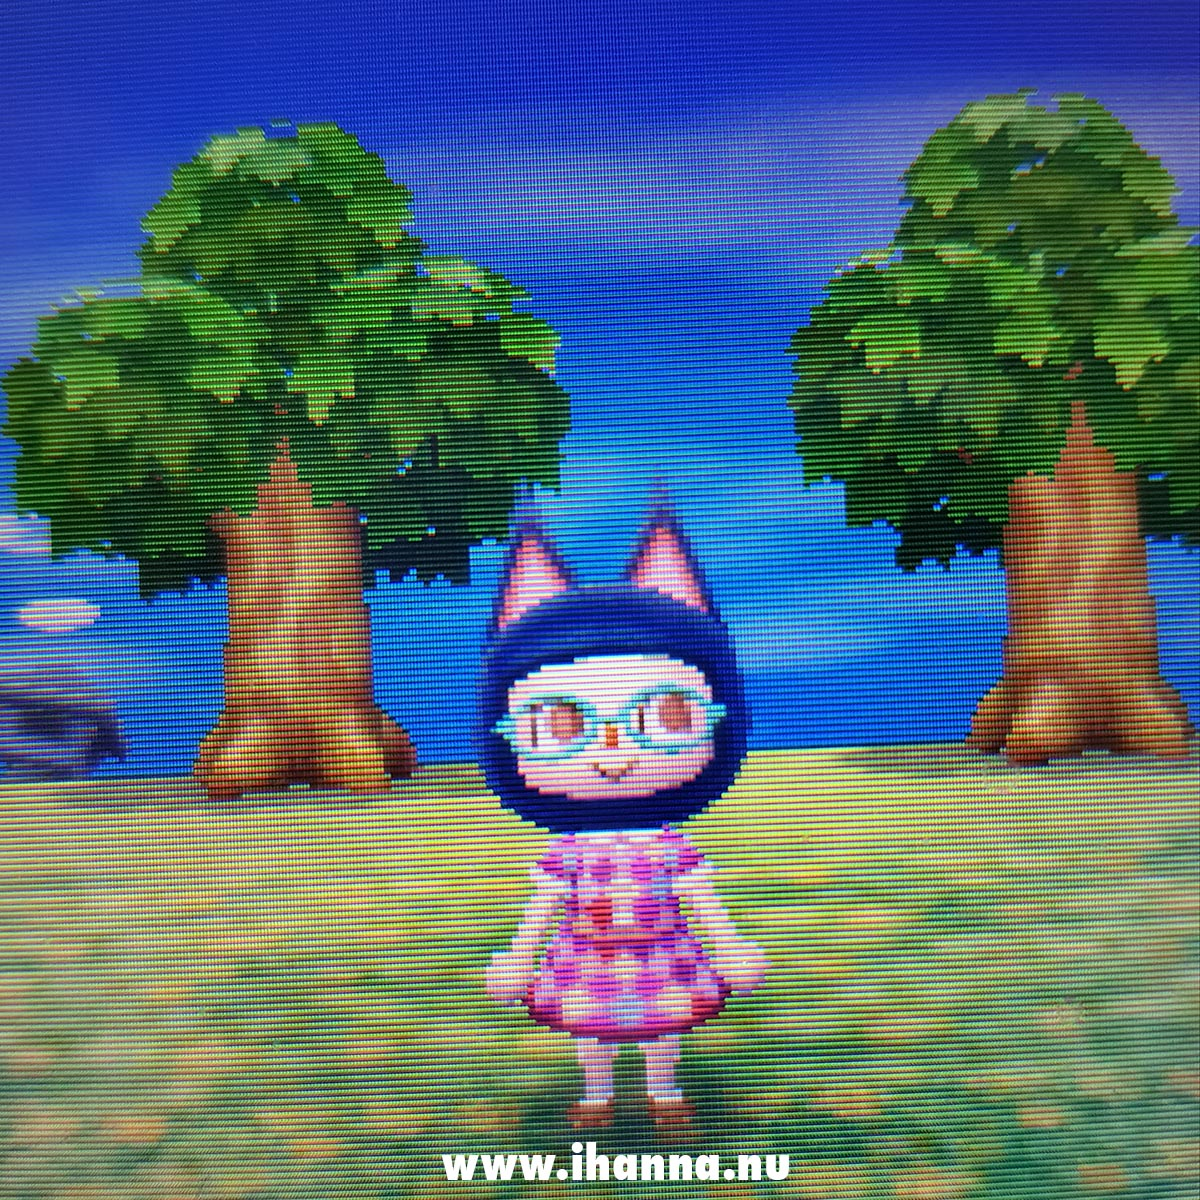 Animal Crossing NL with iHanna as the Mayer